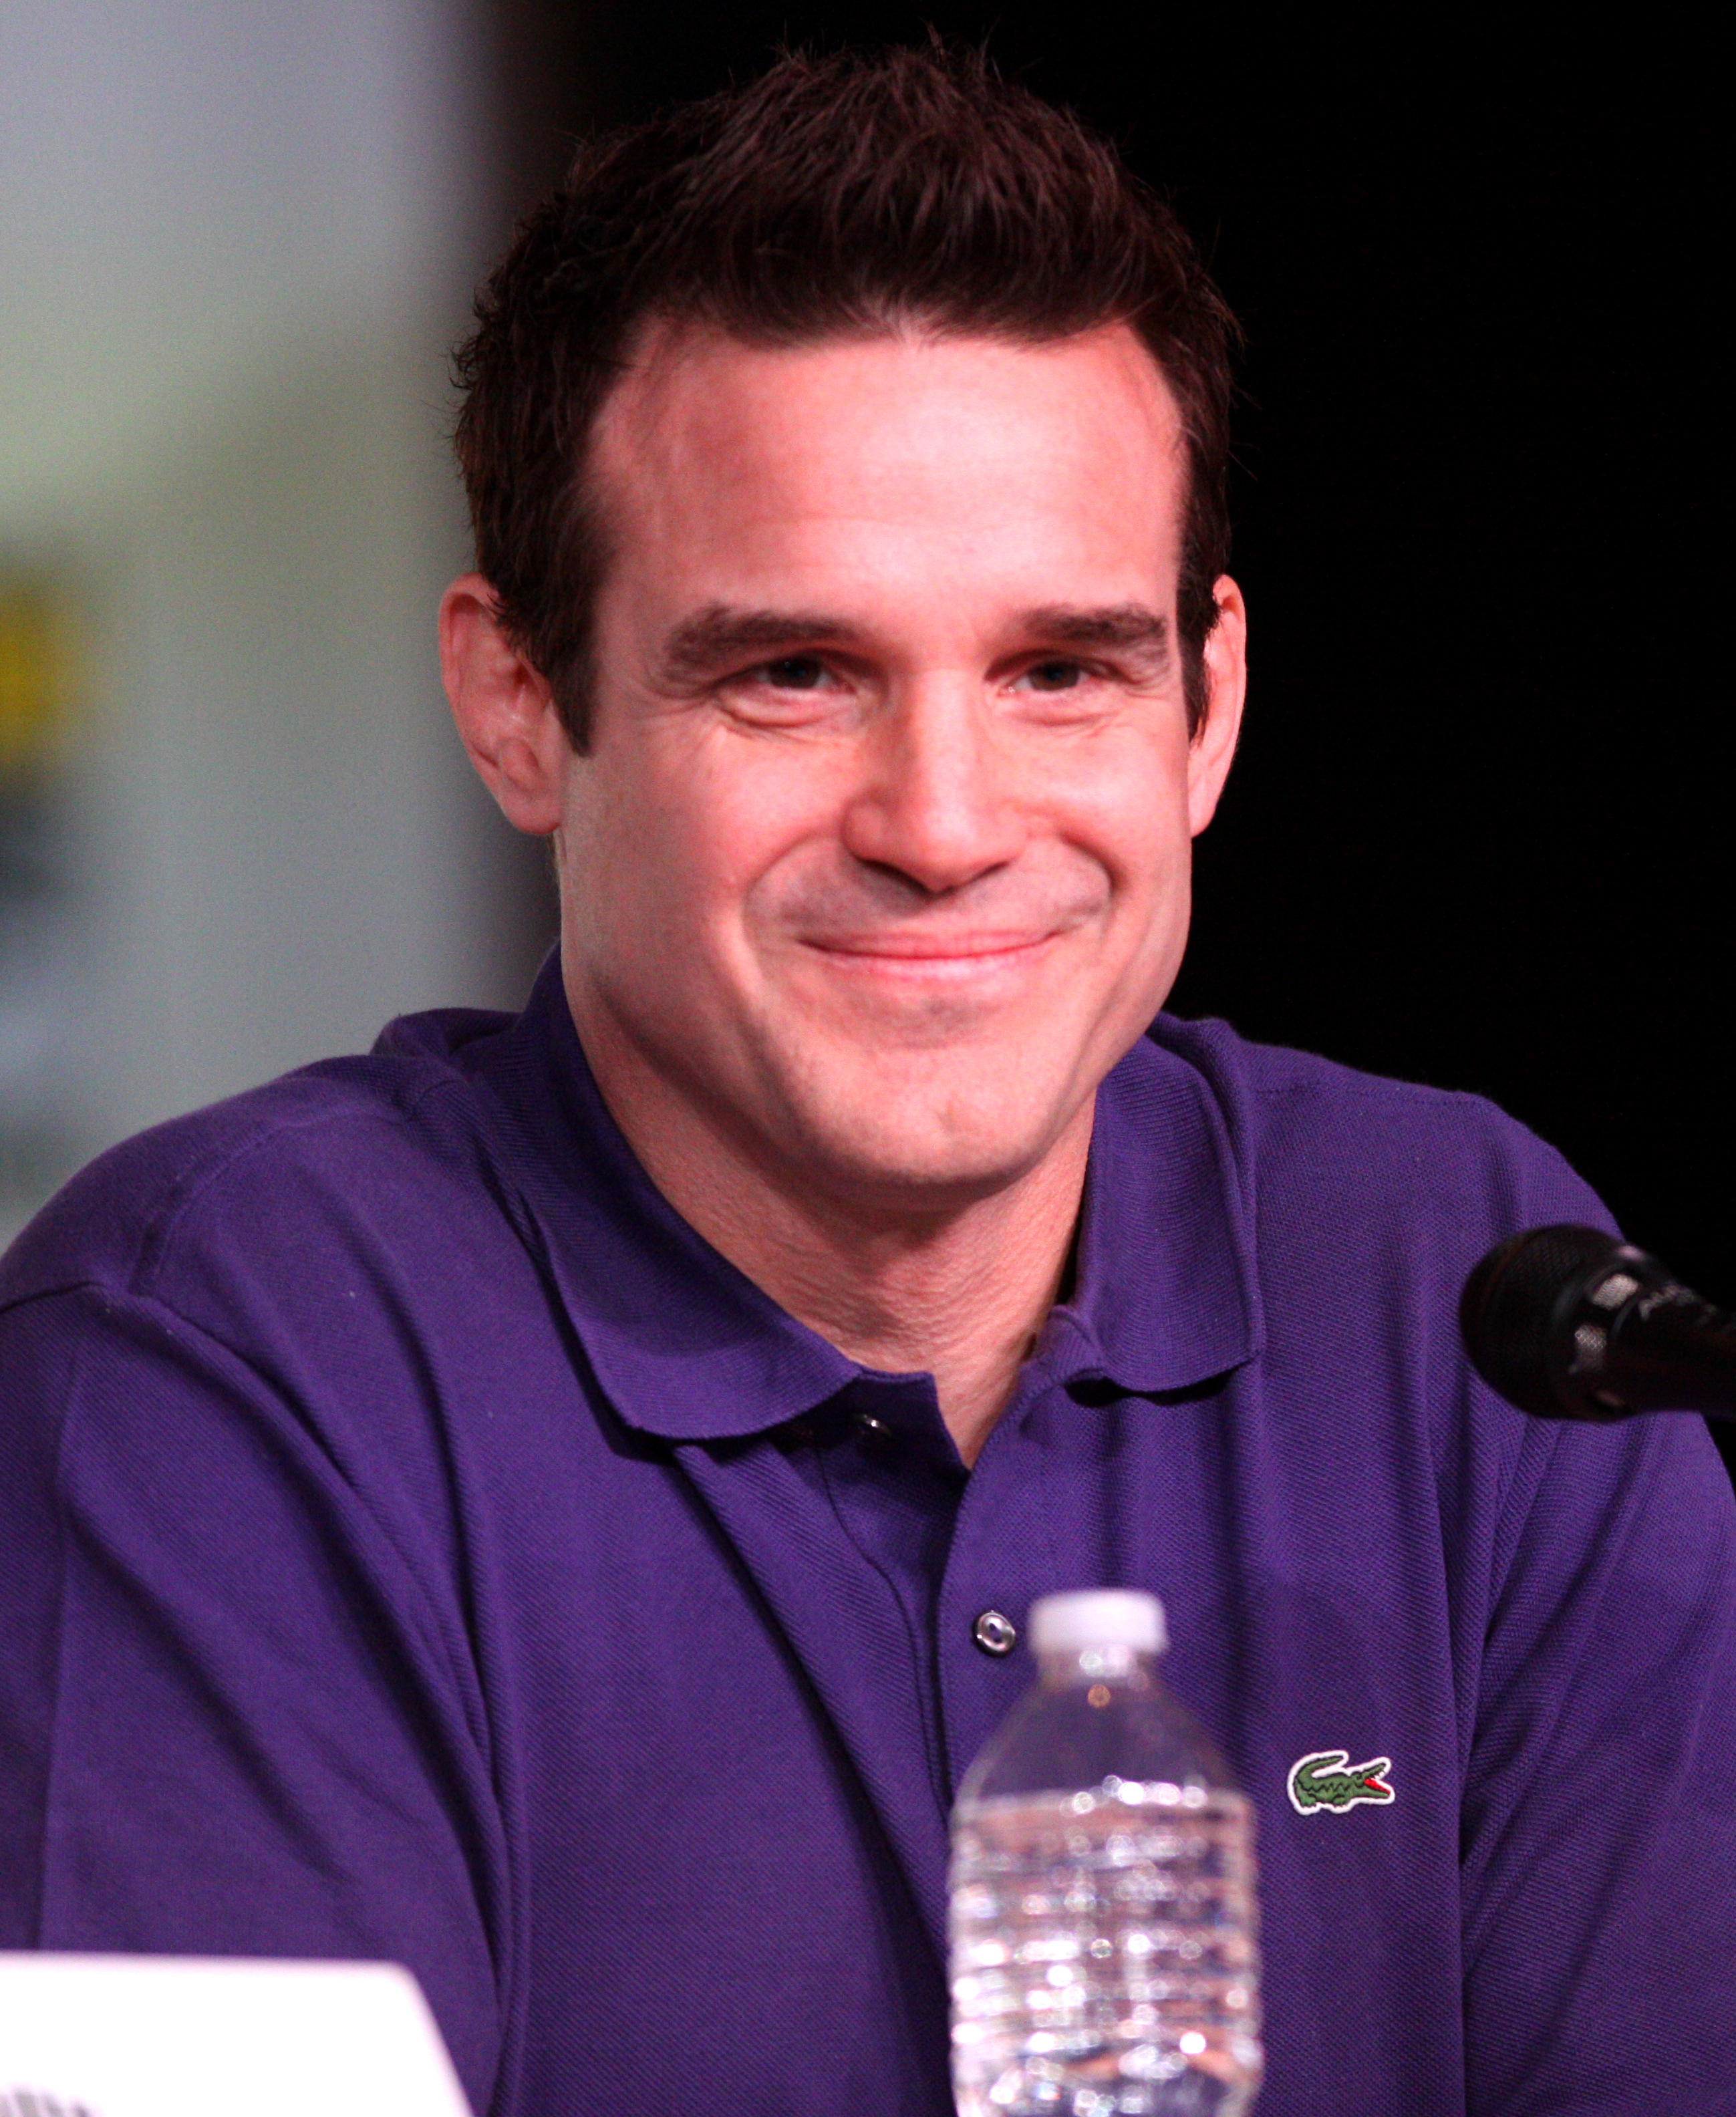 eddie mcclintock friendseddie mcclintock csi, eddie mcclintock instagram, eddie mcclintock twitter, eddie mcclintock bones, eddie mcclintock, eddie mcclintock wiki, eddie mcclintock height, eddie mcclintock facebook, eddie mcclintock imdb, eddie mcclintock net worth, eddie mcclintock agents of shield, eddie mcclintock wife, eddie mcclintock friends, eddie mcclintock lynn sanchez, eddie mcclintock gay, eddie mcclintock and david boreanaz, eddie mcclintock castle, eddie mcclintock wig, eddie mcclintock modern family, eddie mcclintock art